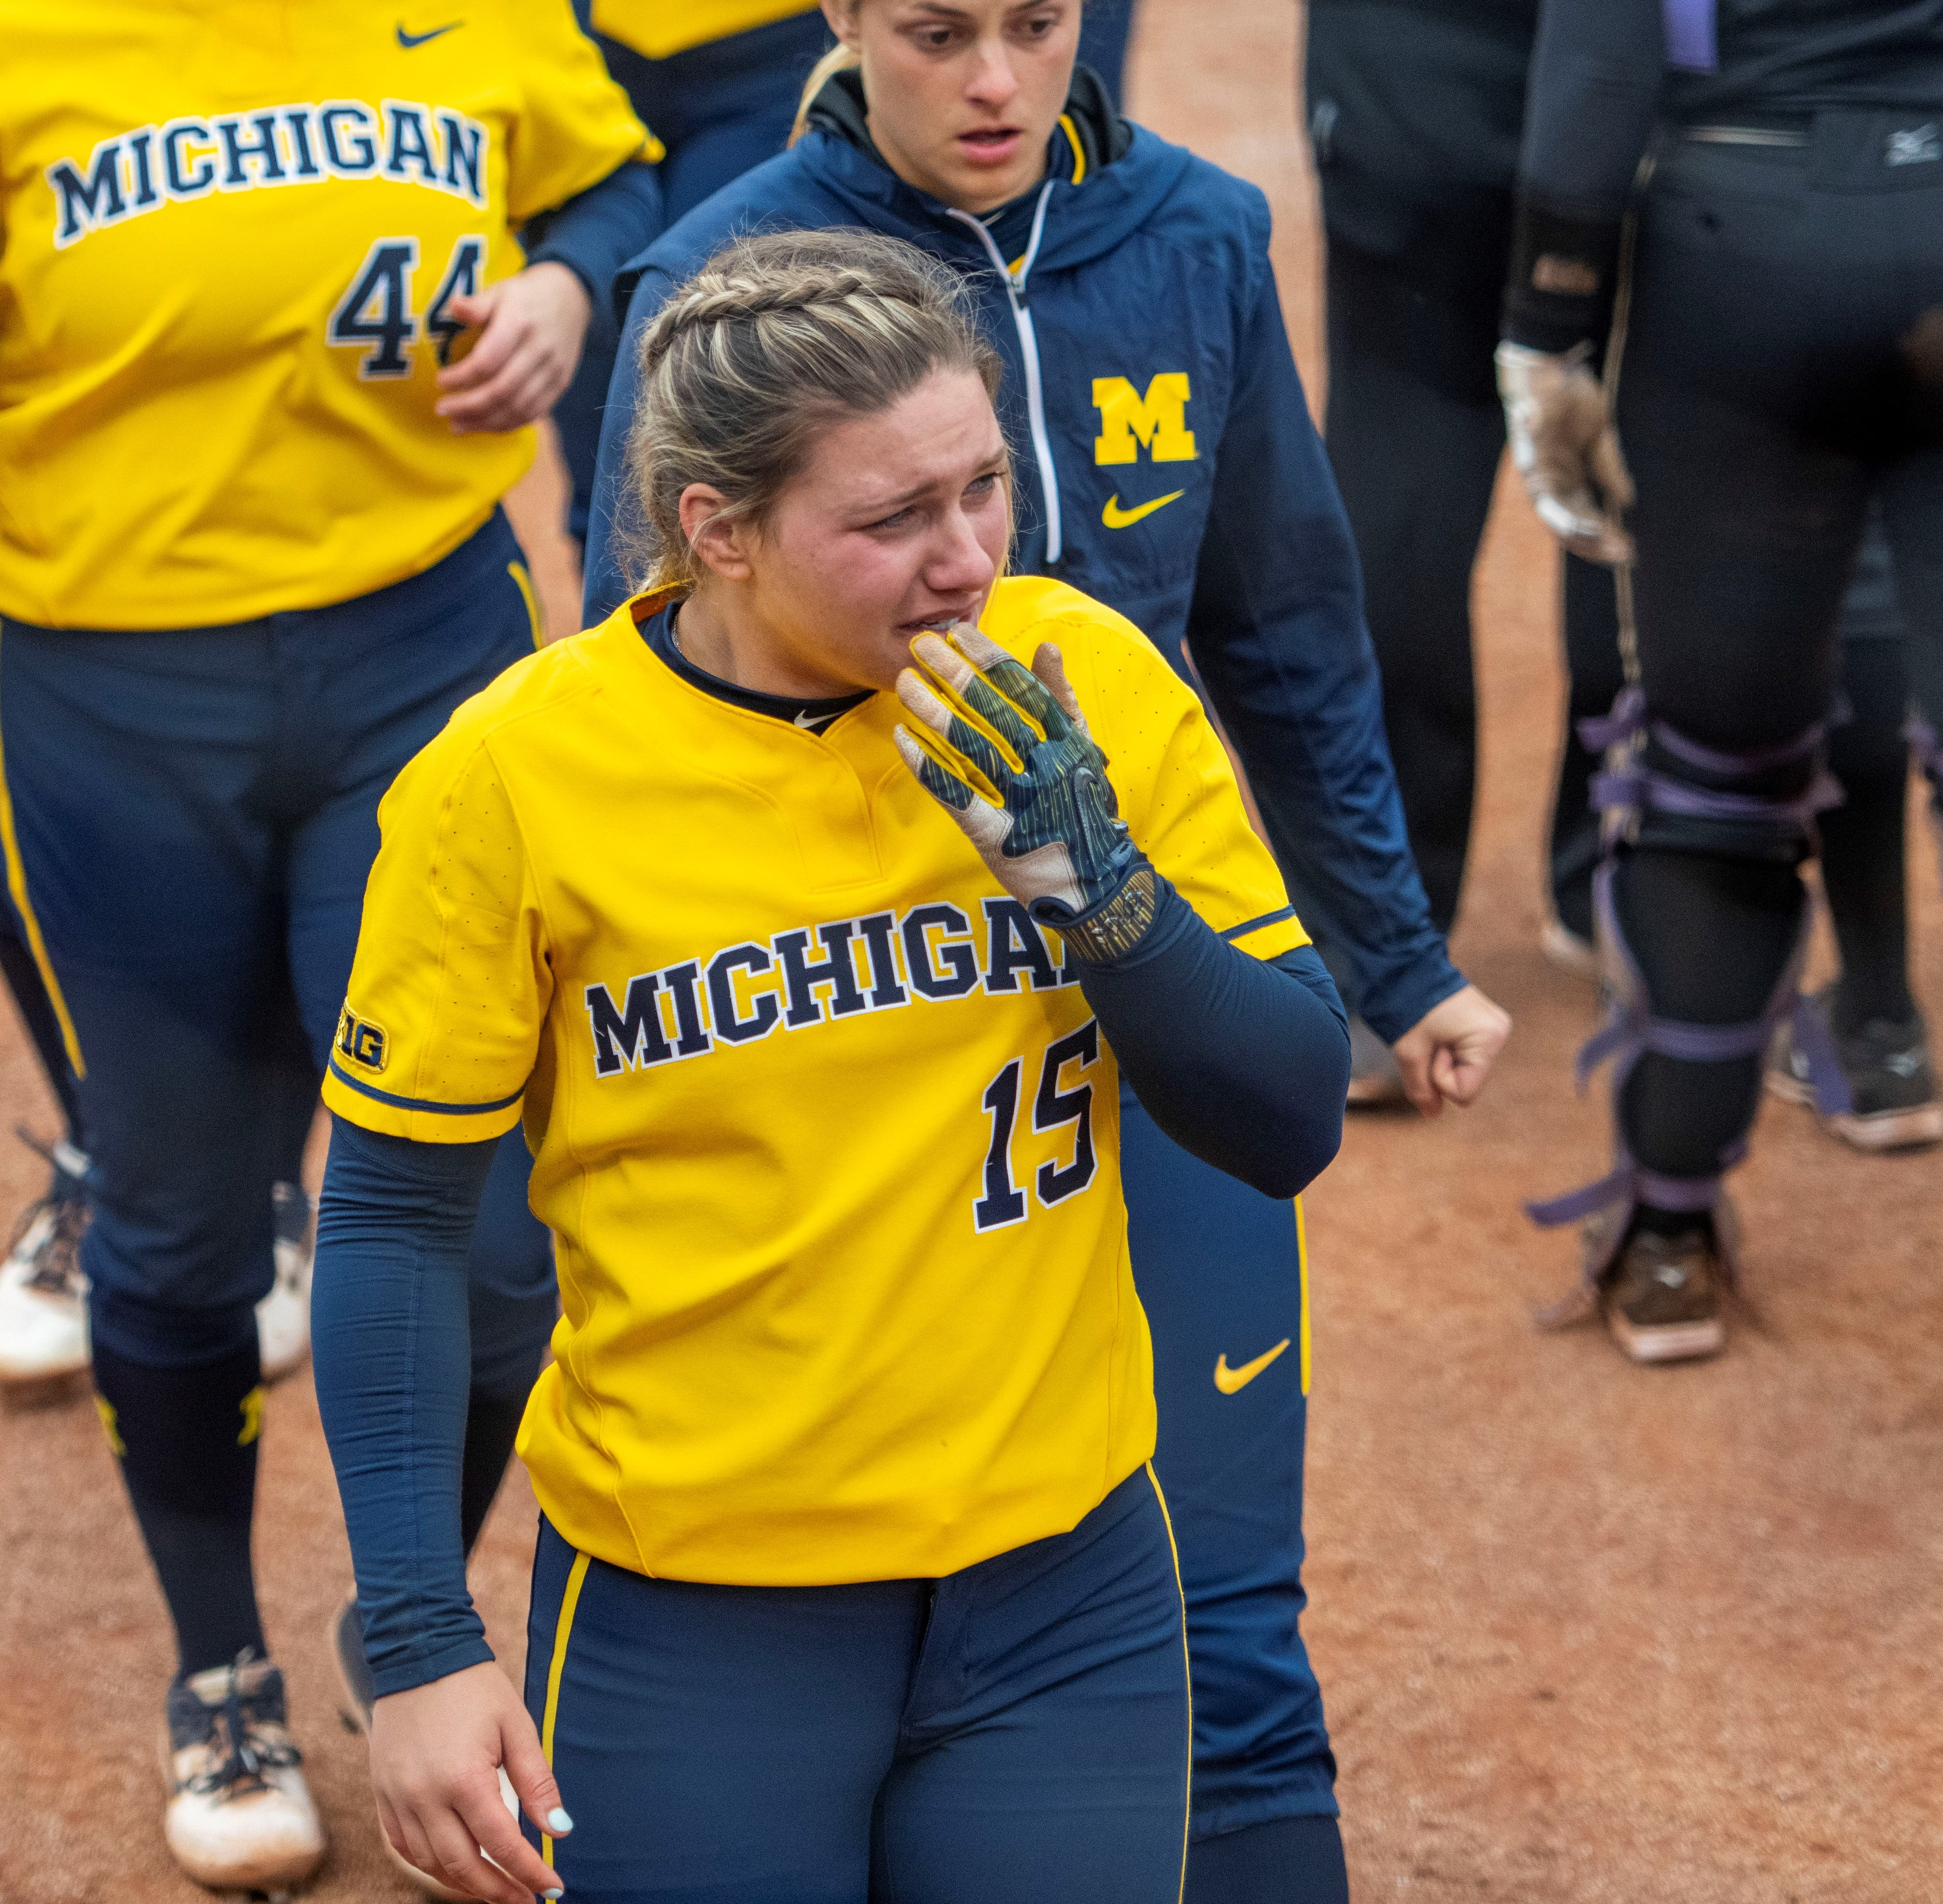 Michigan softball can't find offense as season ends in NCAA regional